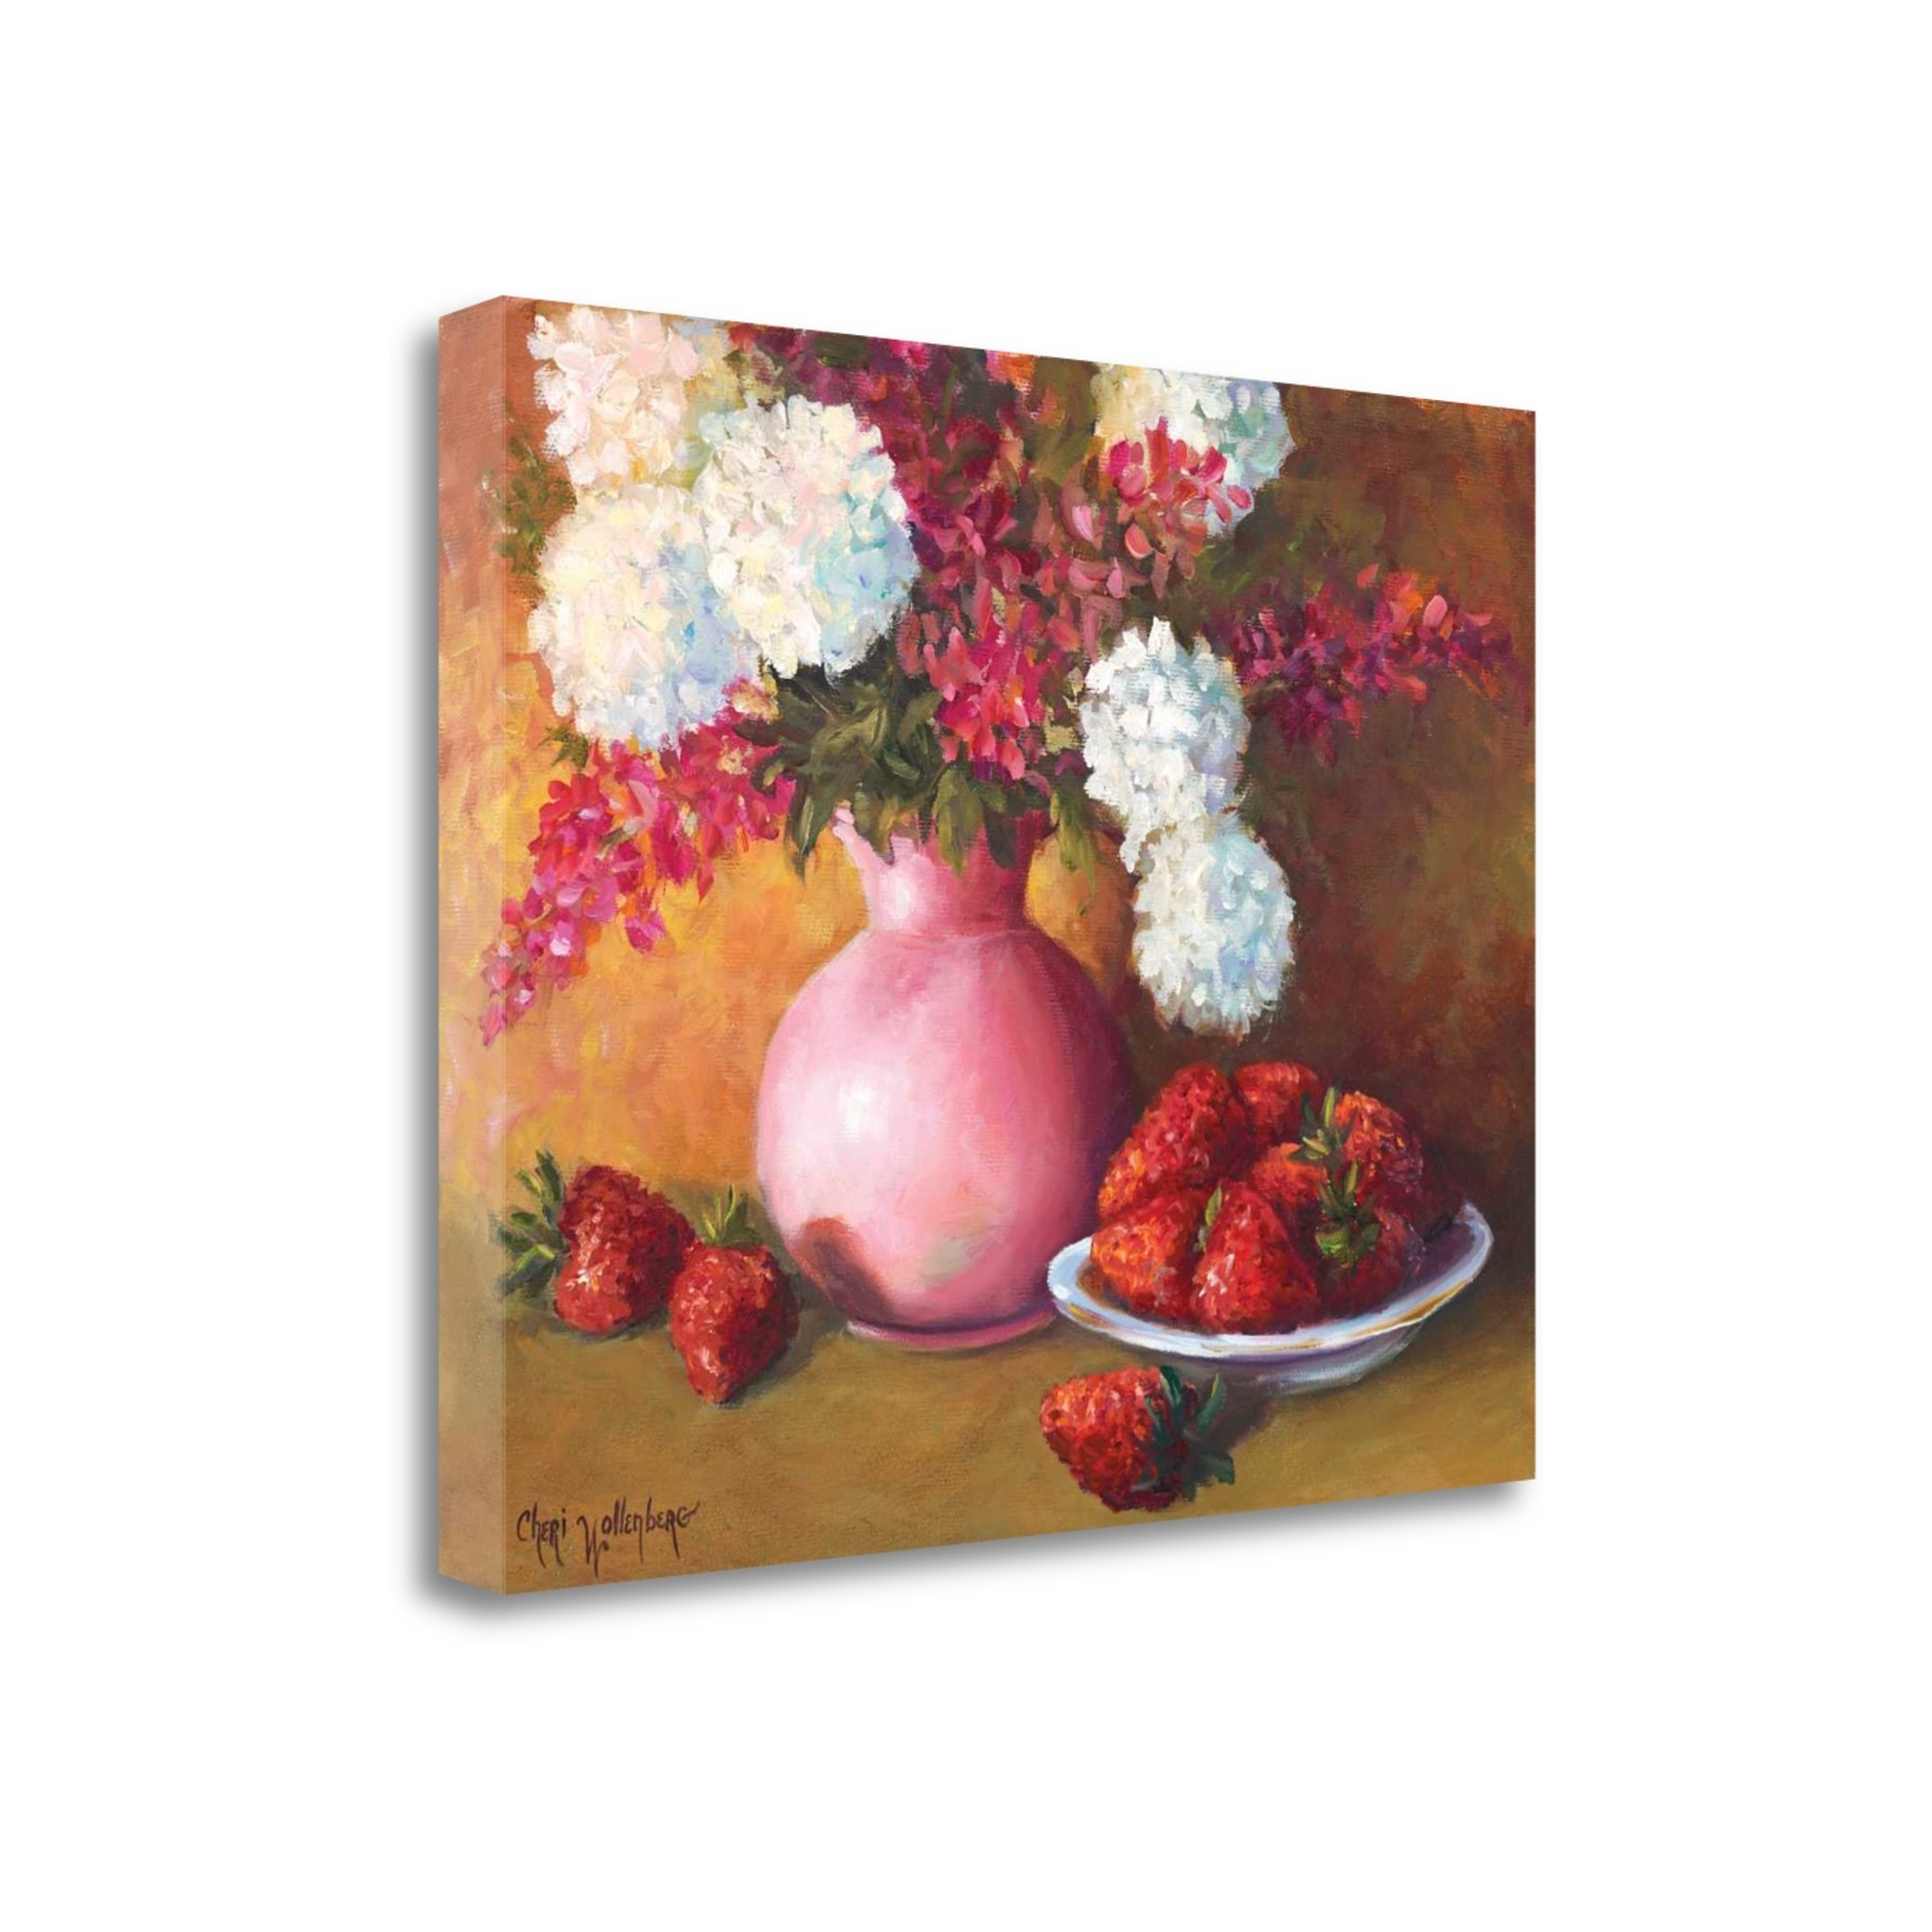 "Pink Vase And Strawberries By Cheri Wollenberg, 40"" x 31\"" Fine Art Giclee Print on Gallery Wrap Canvas, Ready to Hang"